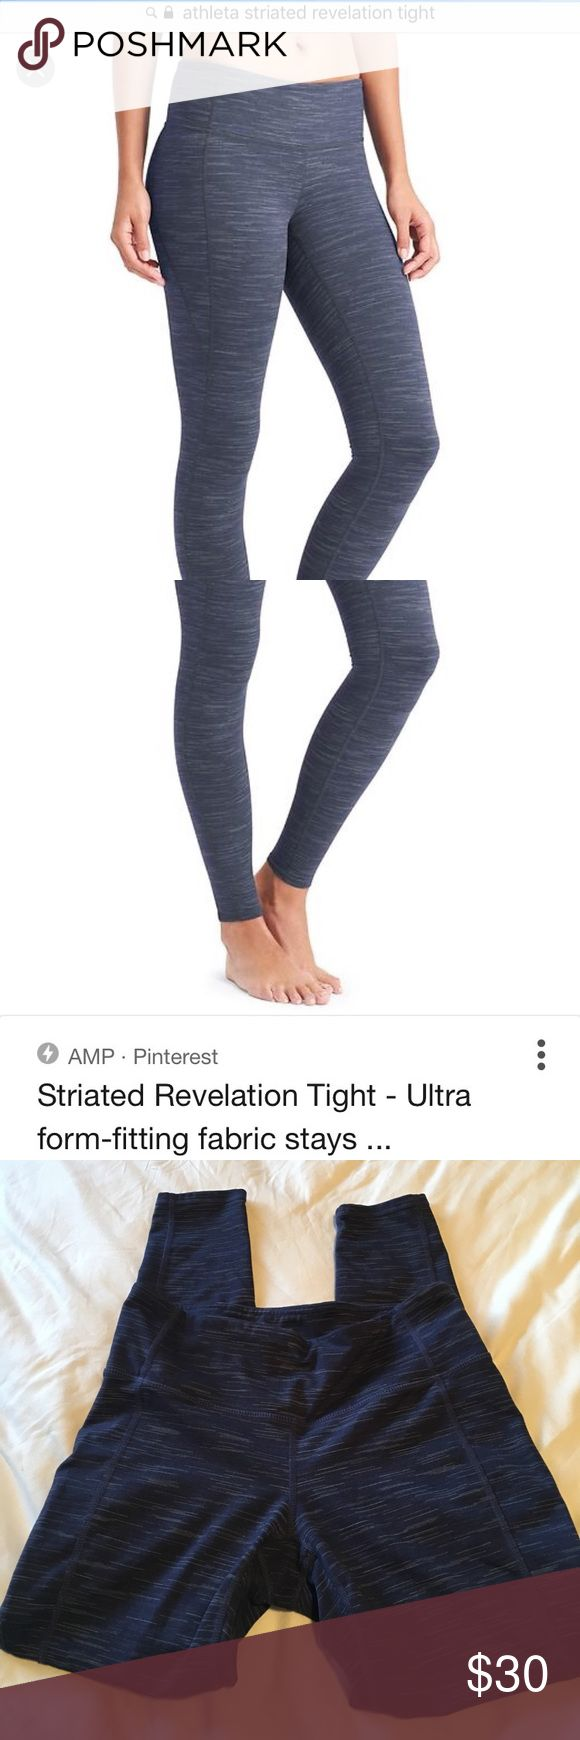 Athleta striated revelation tight - size MP Hello, I'm selling these gently used Athleta tights! They're size medium petite. They are in great condition and very comfortable. Please let me know if you have any questions! Athleta Pants Leggings